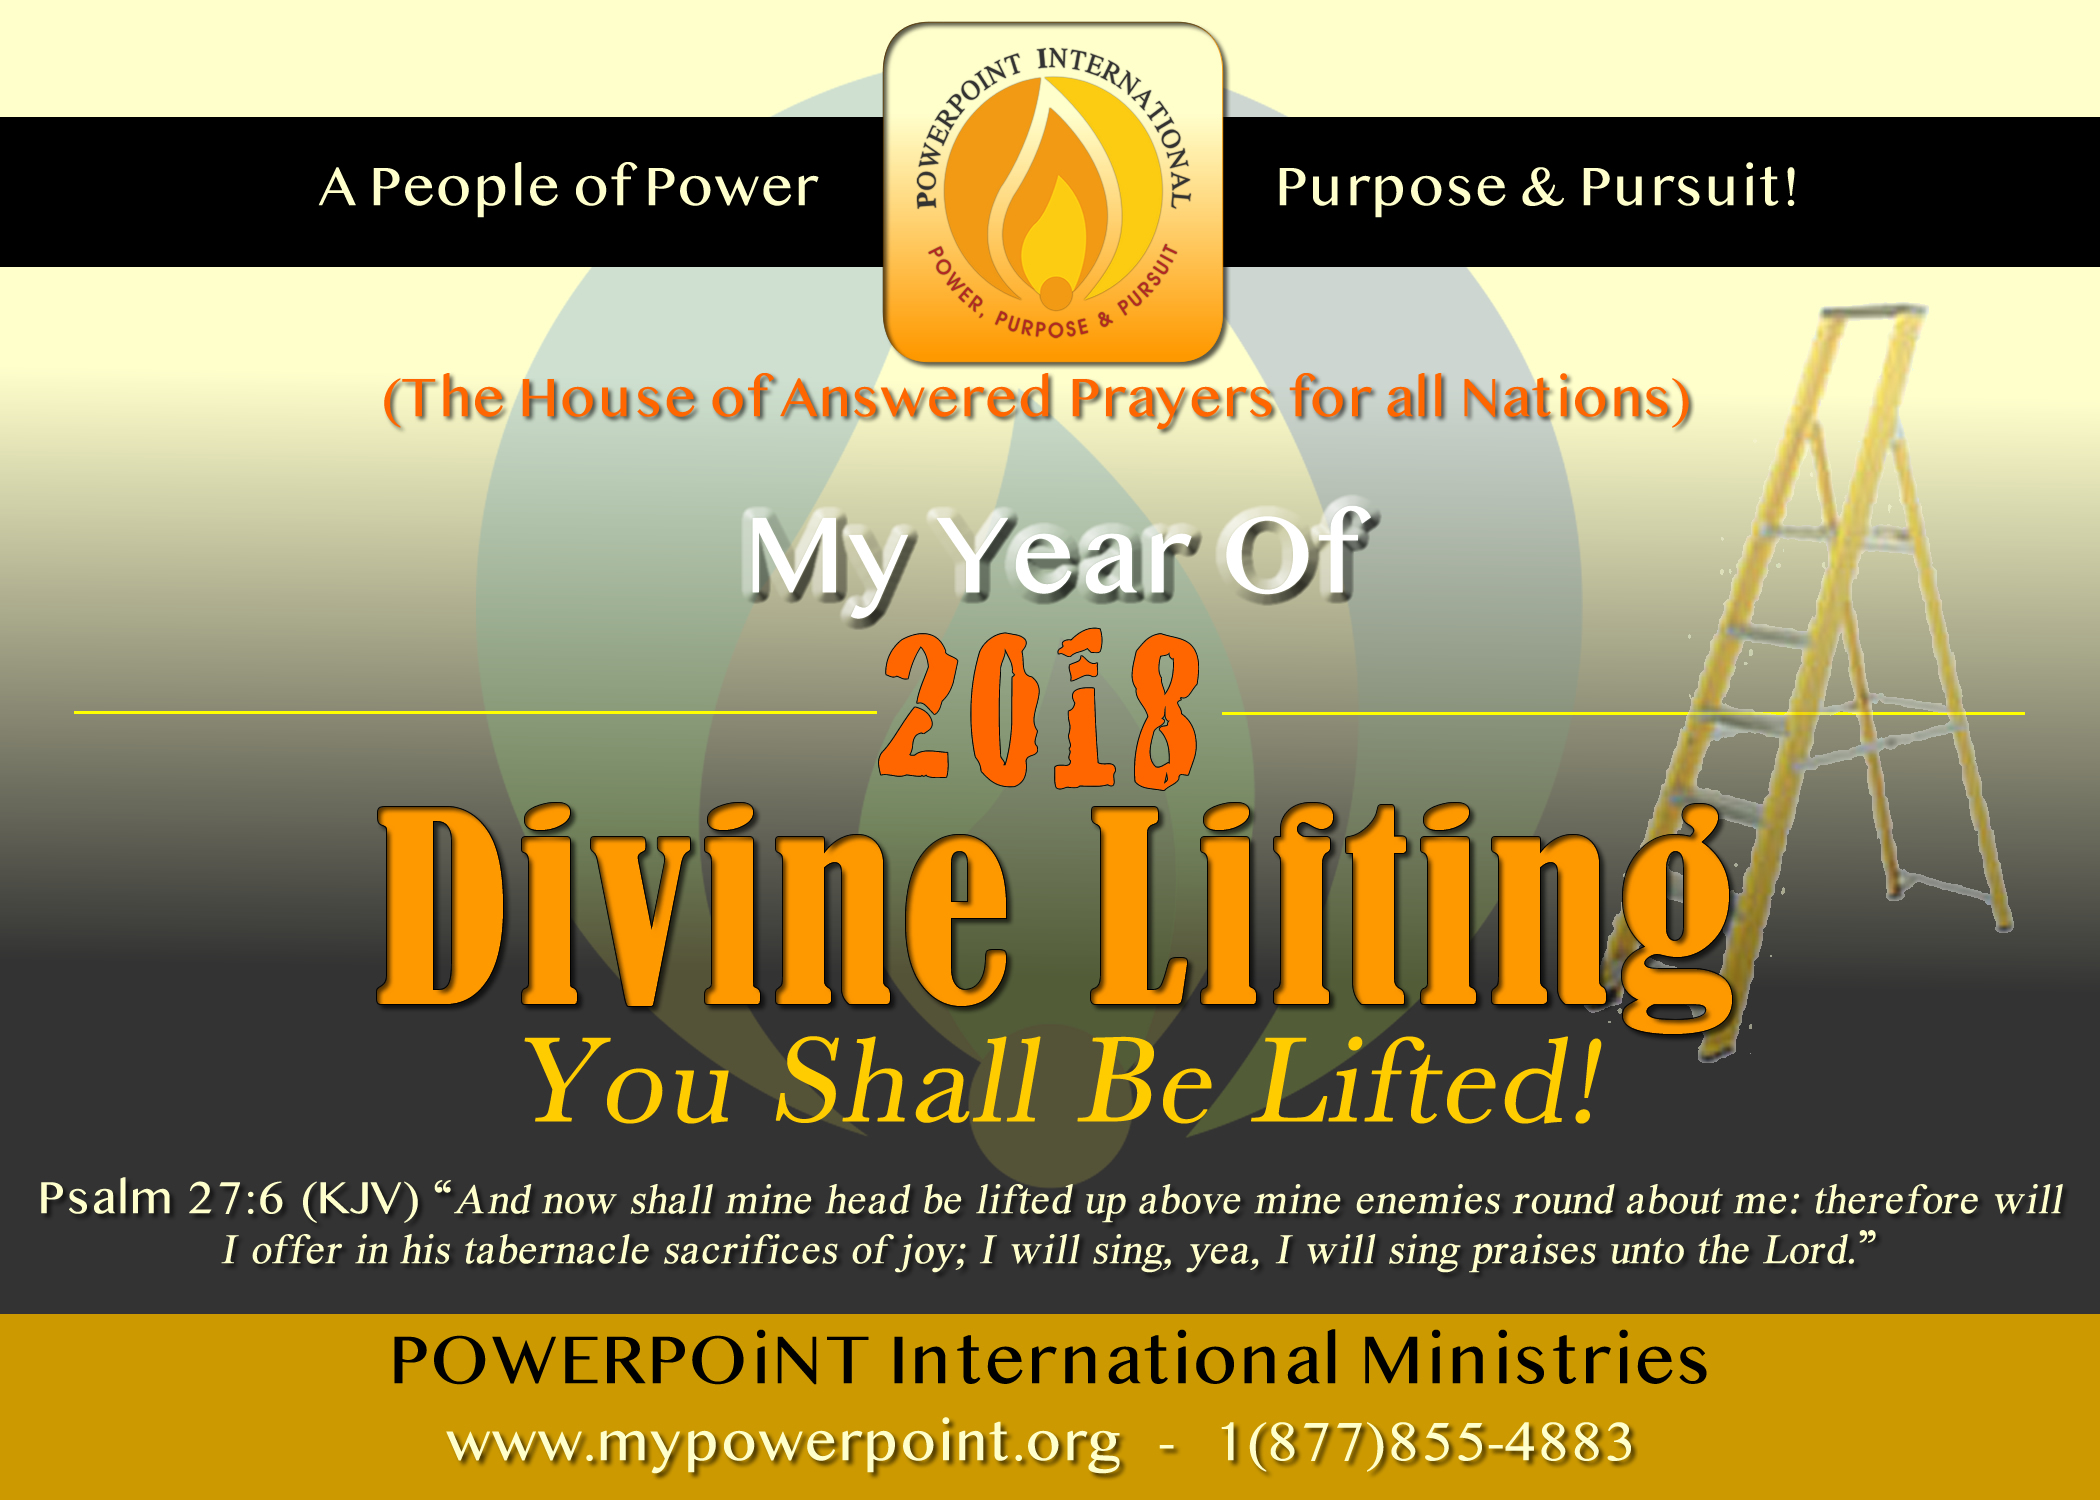 2018 The Year of Divine Lifiting for All